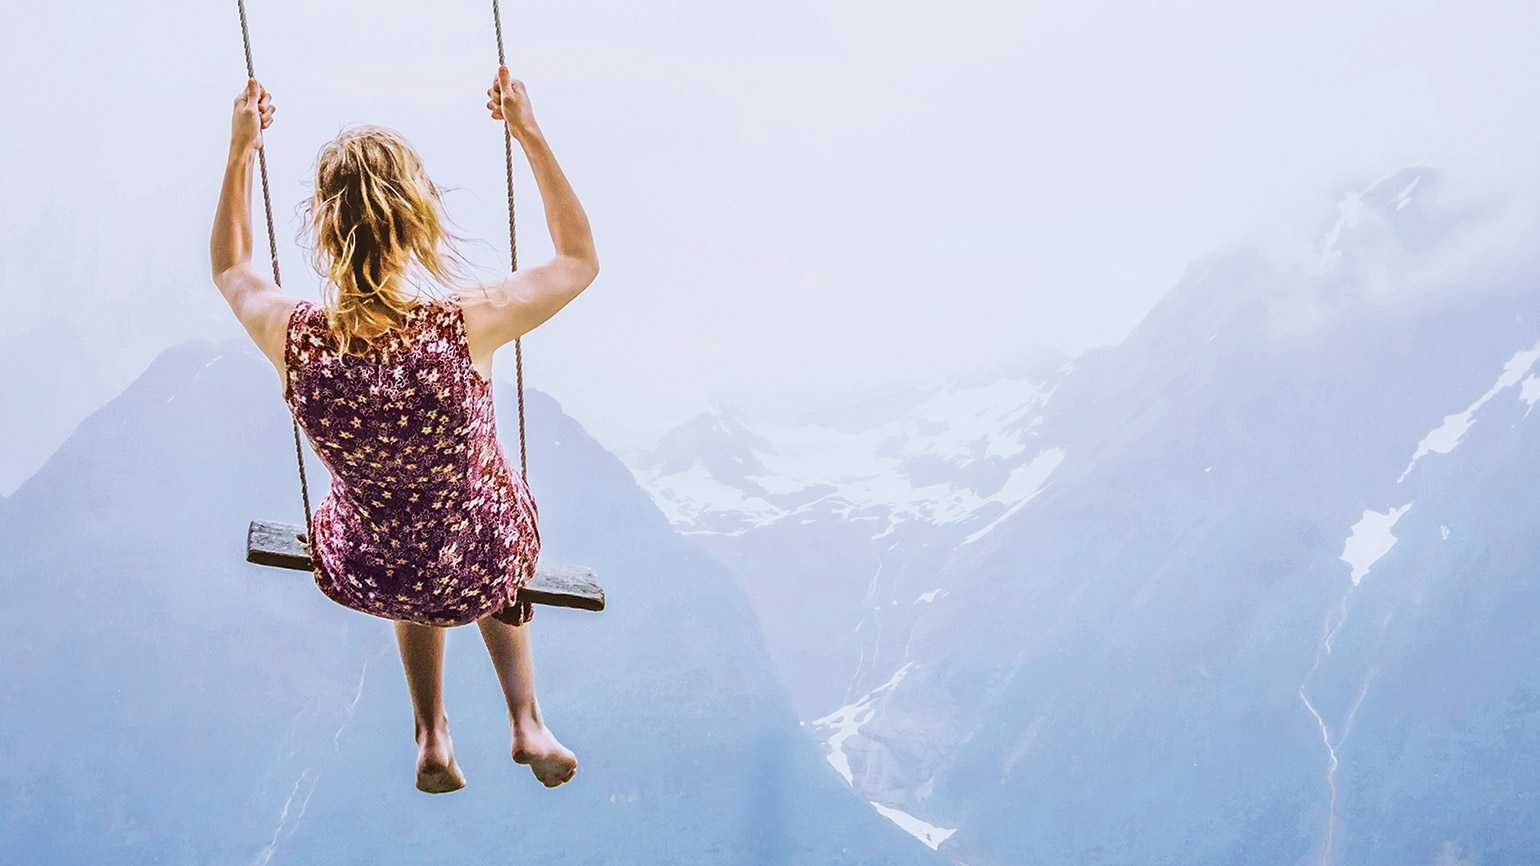 A woman on a swing in the mountains; Credit: Anna Berkut/Getty Images